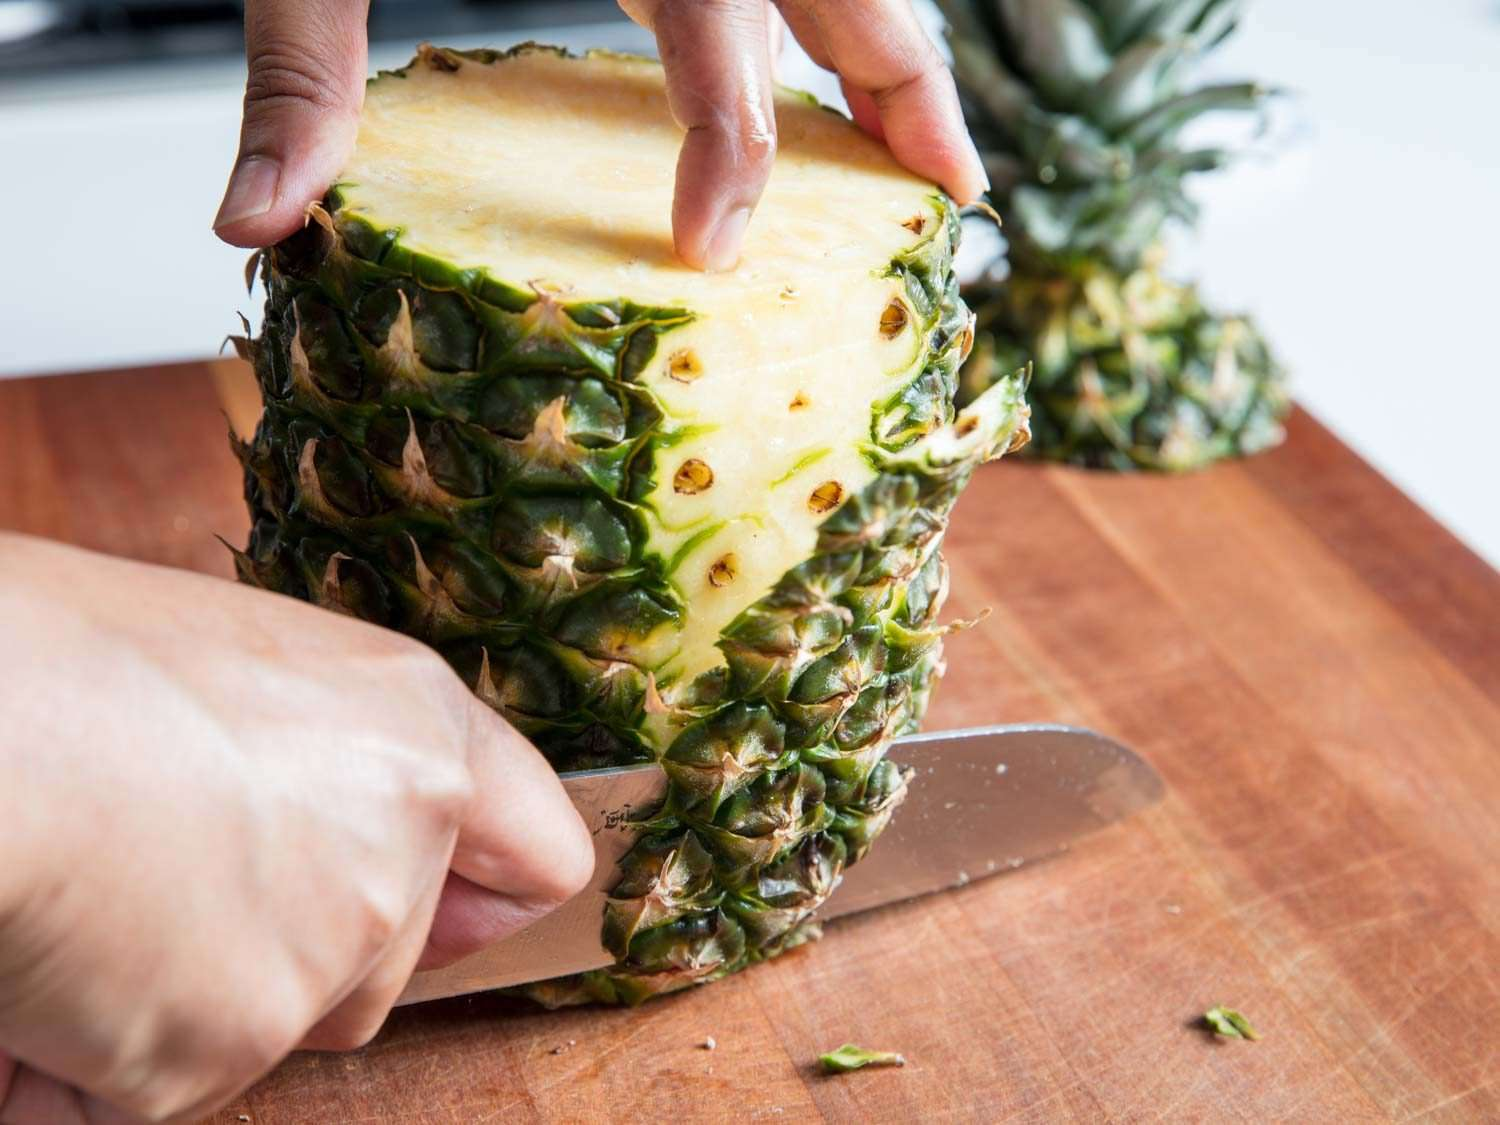 A knife slicing off the sides of a pineapple.